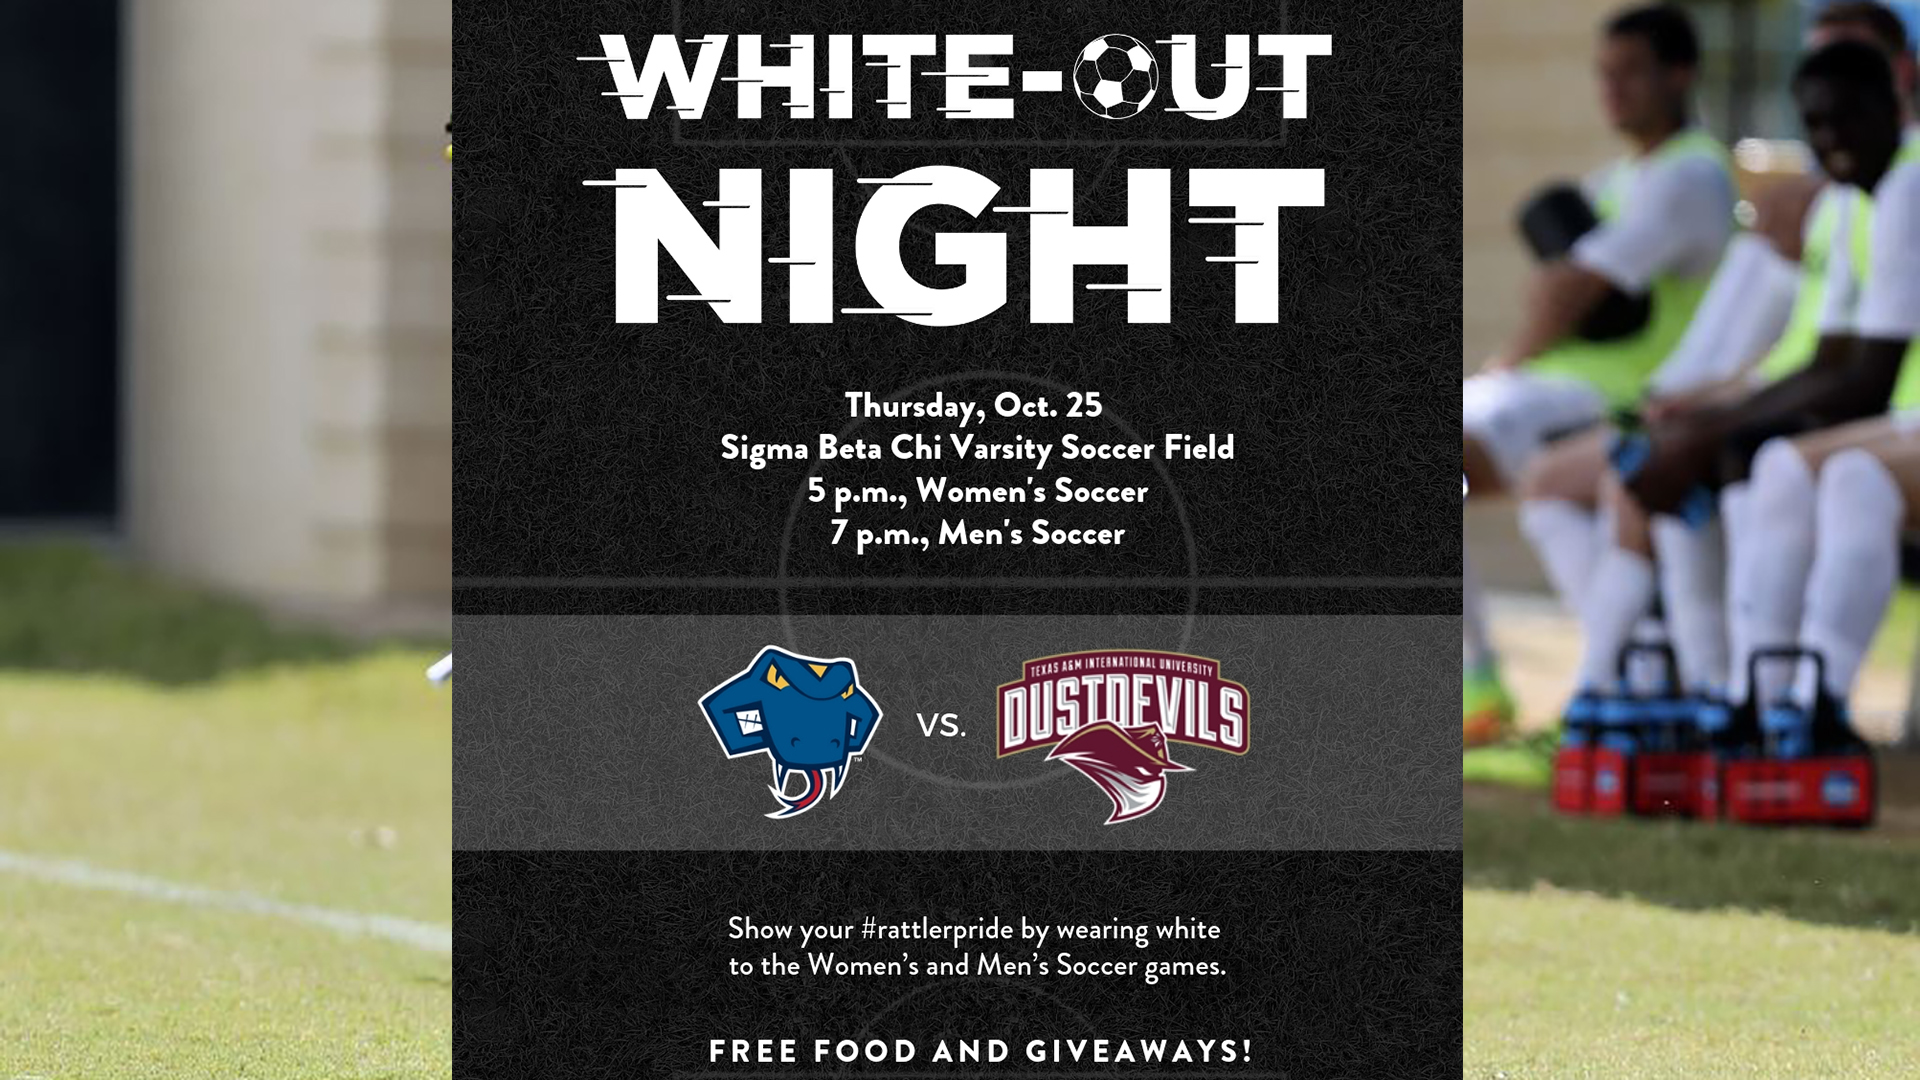 5fec961cd Rattler Soccer to host TAMIU on WHITE-OUT NIGHT - St. Mary s ...